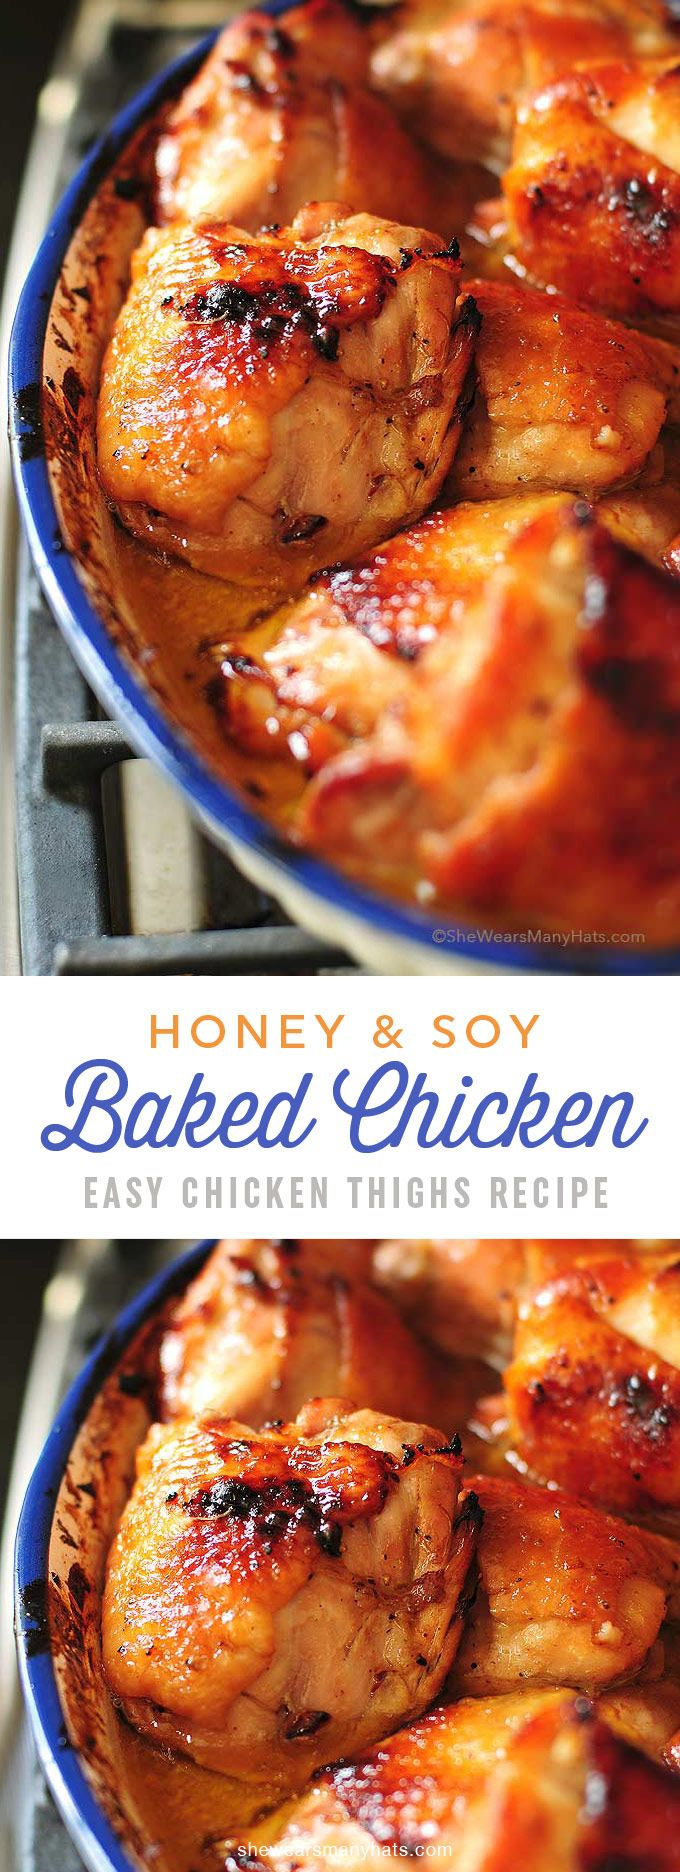 Honey Soy Baked Chicken Thighs Recipe shewearsmanyhats.com